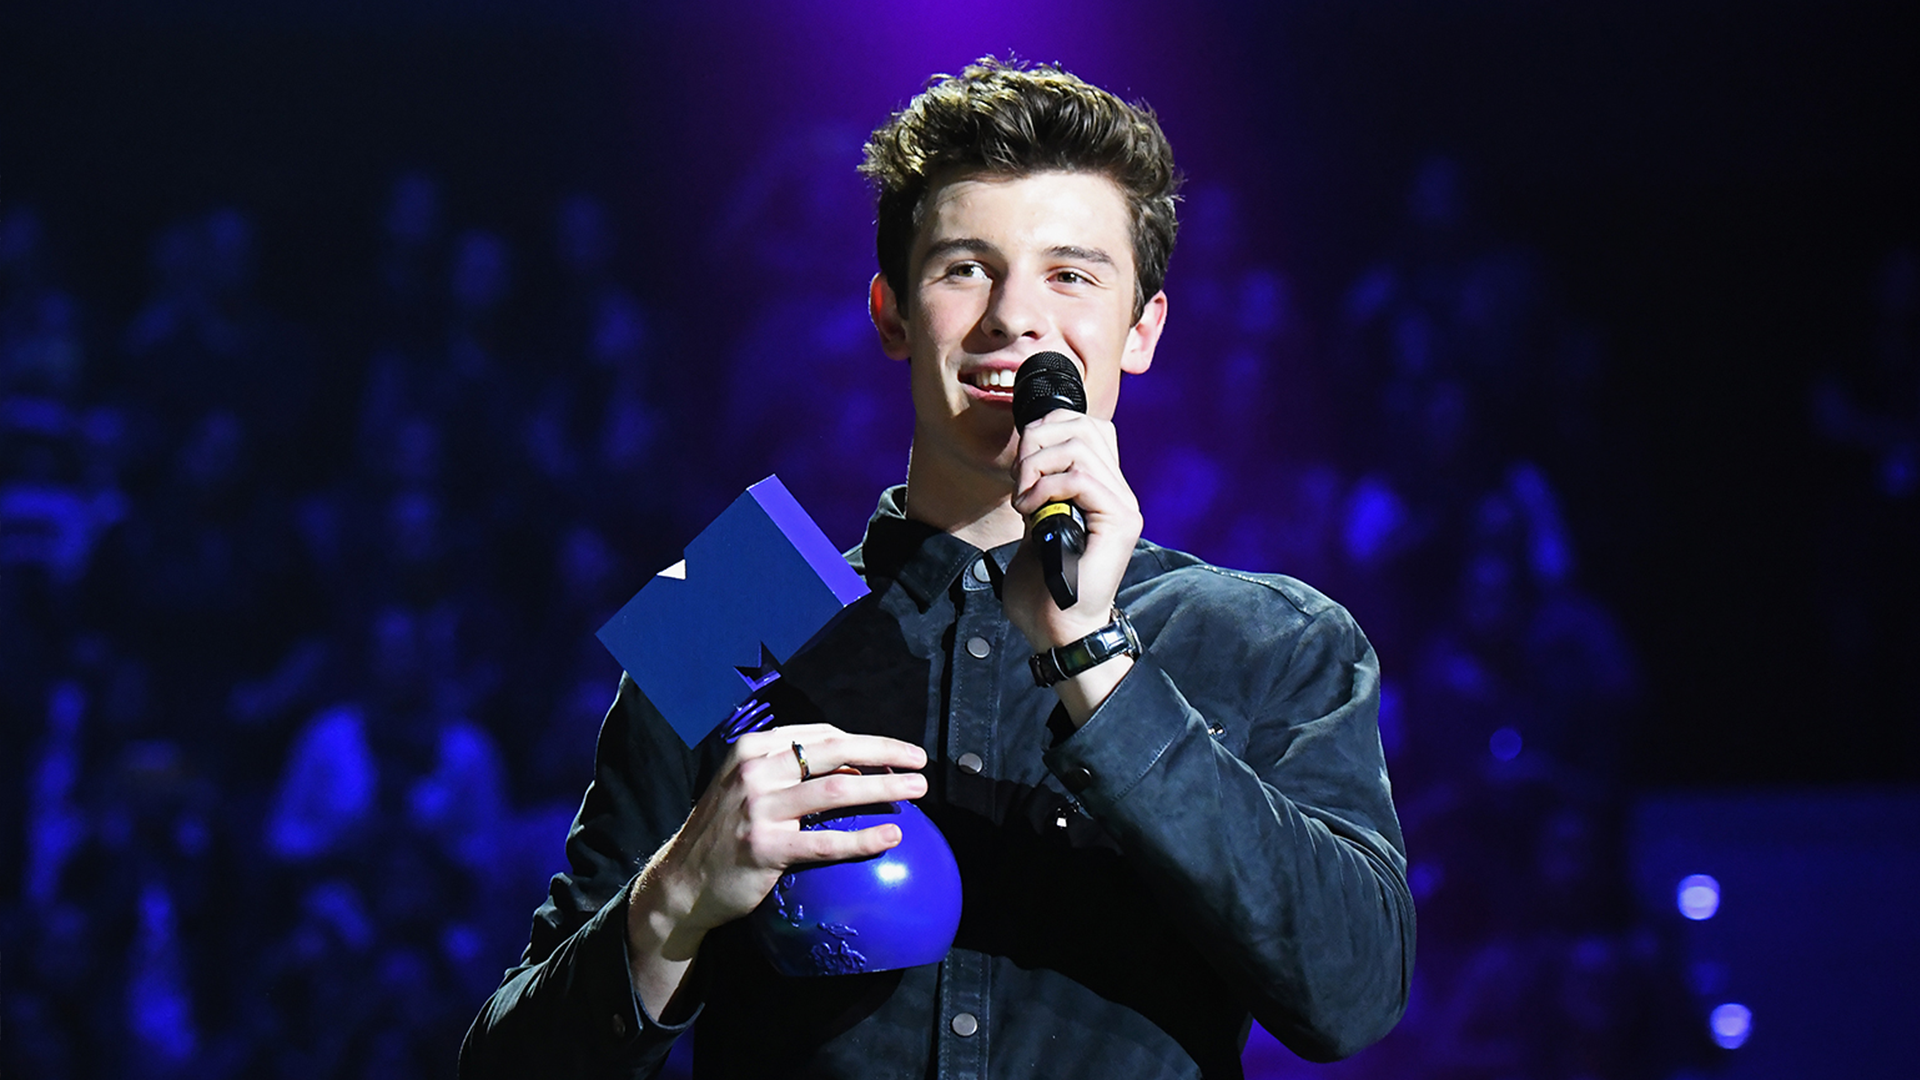 Shawn Mendes Europe Music Awards